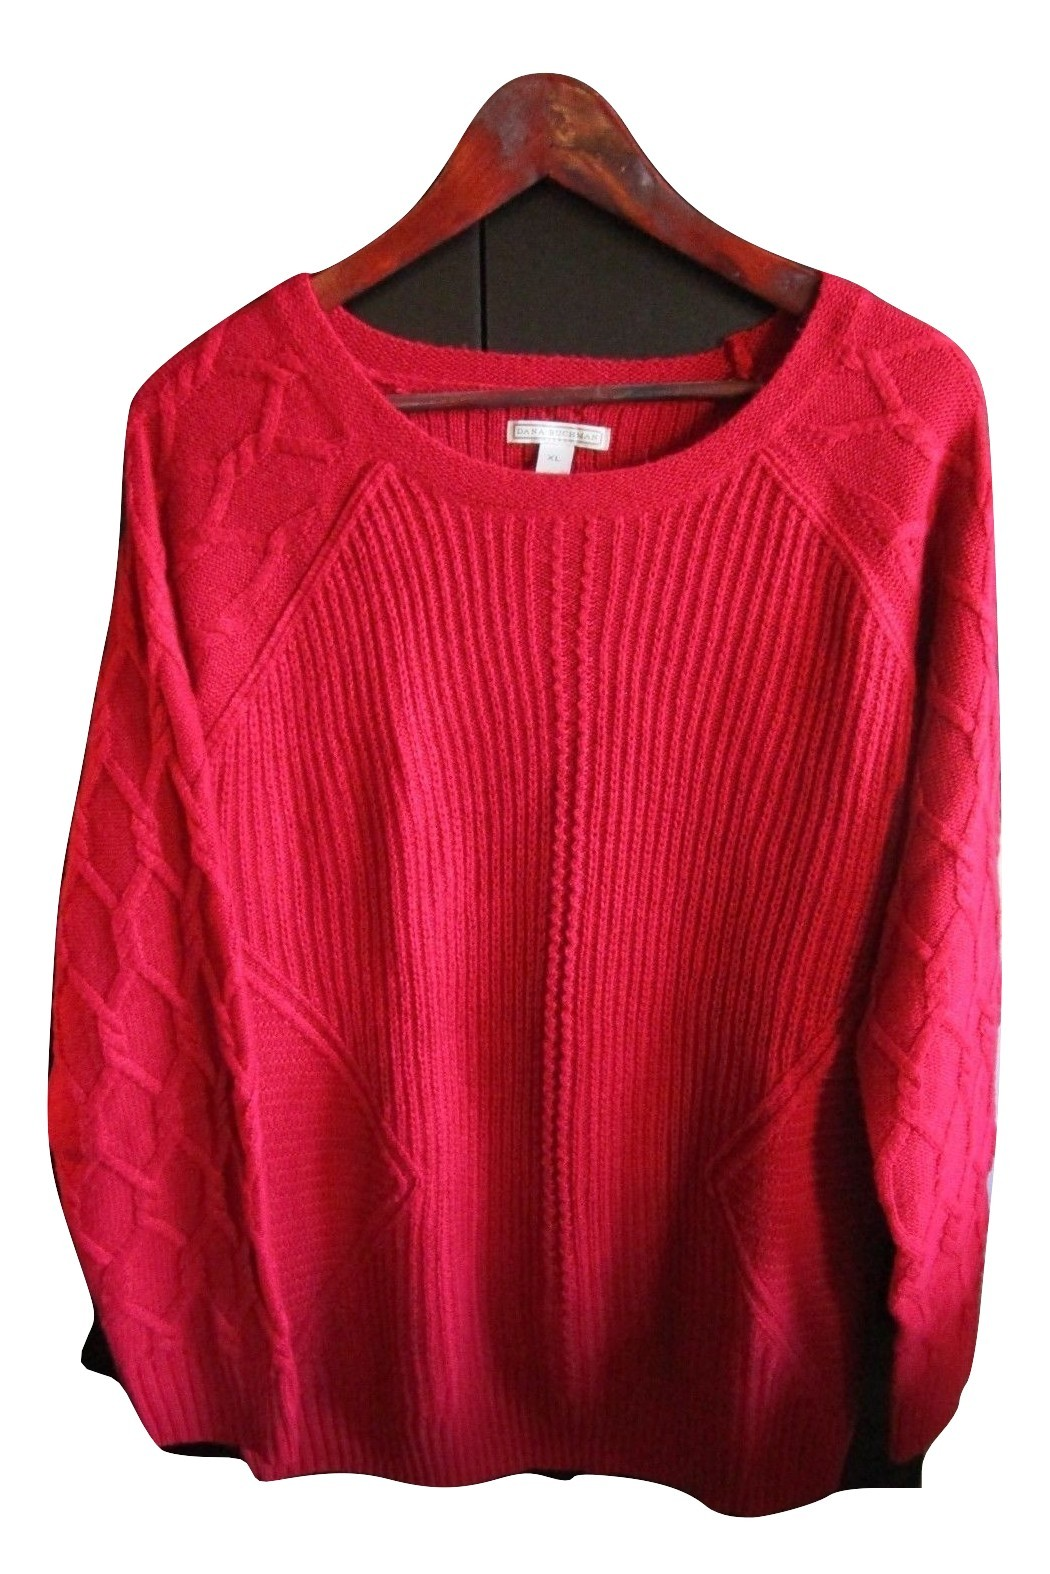 Women's Red Round Neck Dana Buchman Sweater, Size XL--FREE Priority Shipping!